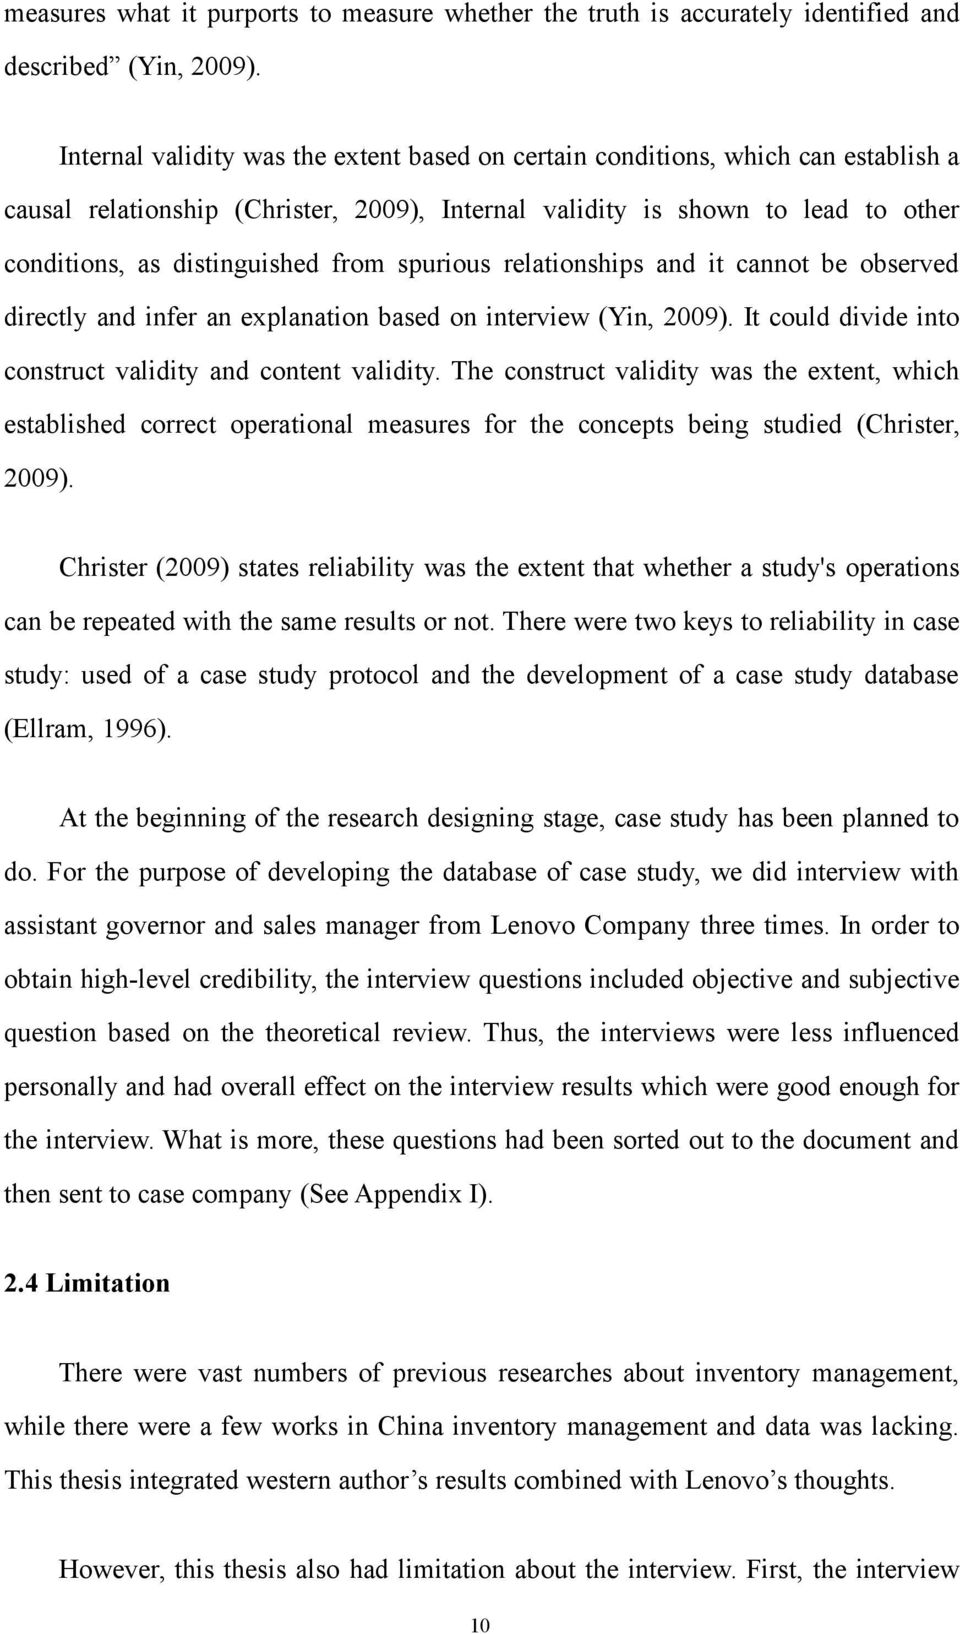 """objective of the study thesis payroll system Project objectives changed to """"payroll system"""" after our meeting with our client the group was then divided into two pairs that would work on parts of the."""